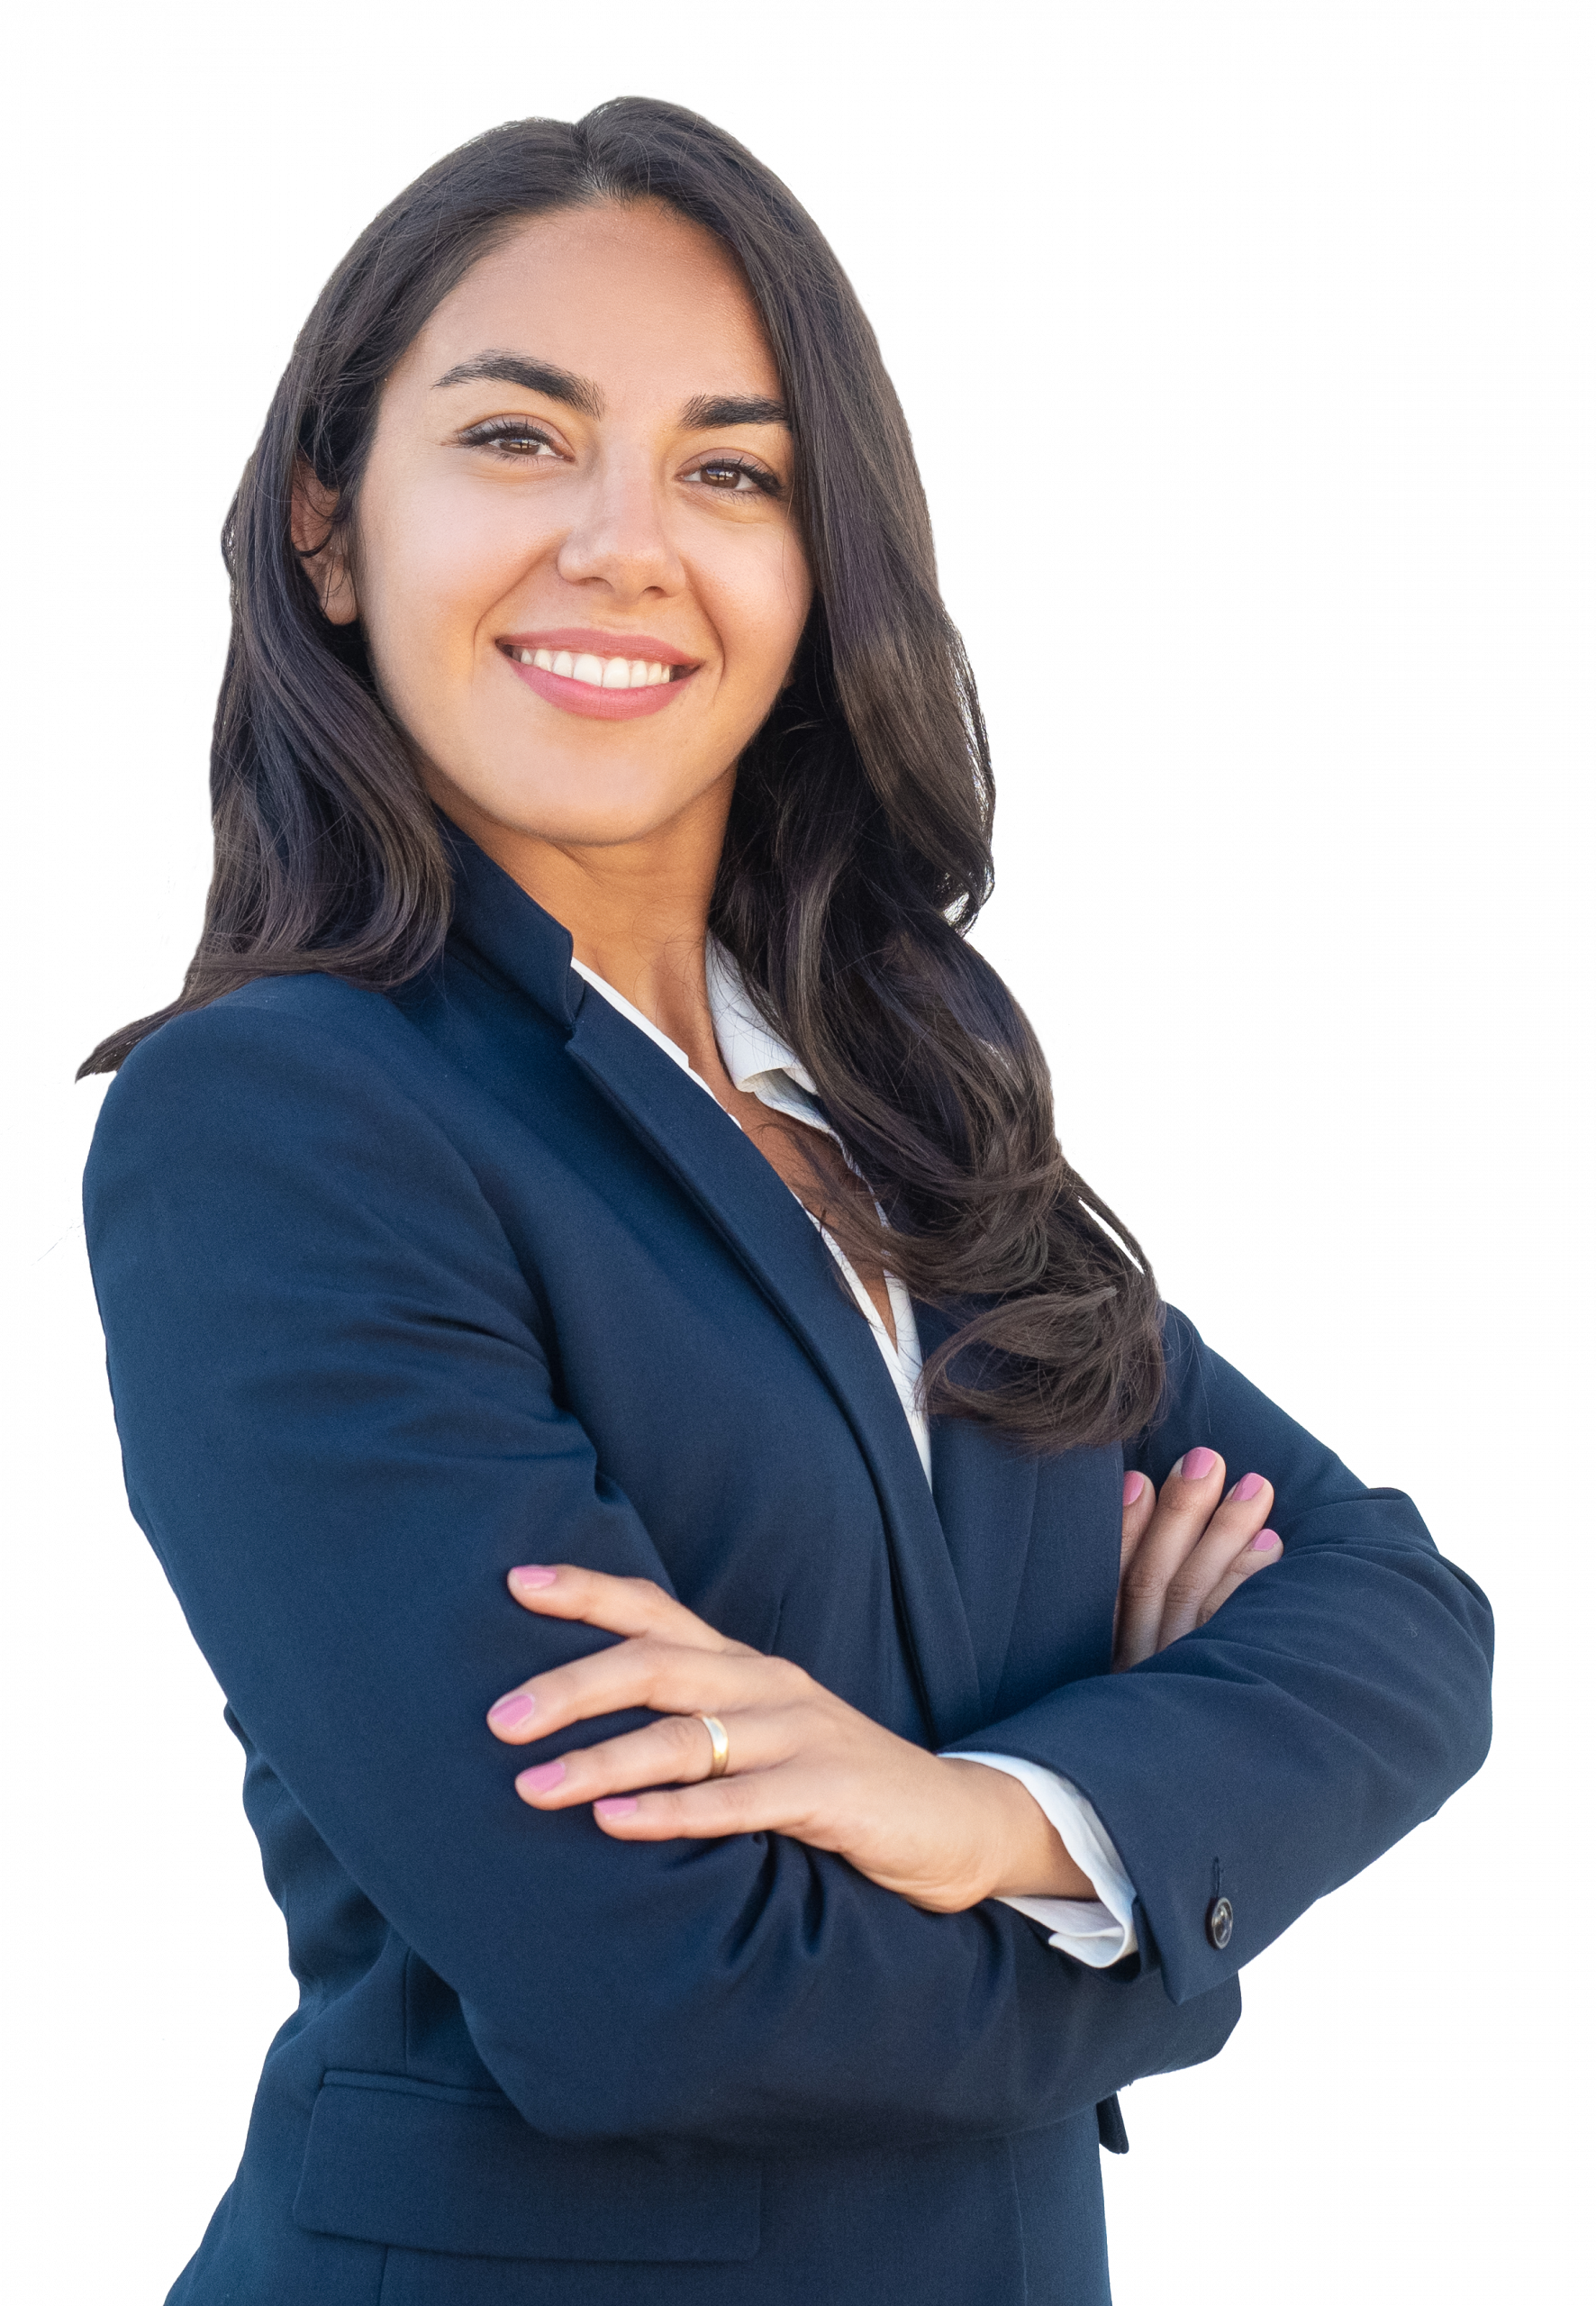 smiling-confident-businesswoman-posing-with-arms-folded